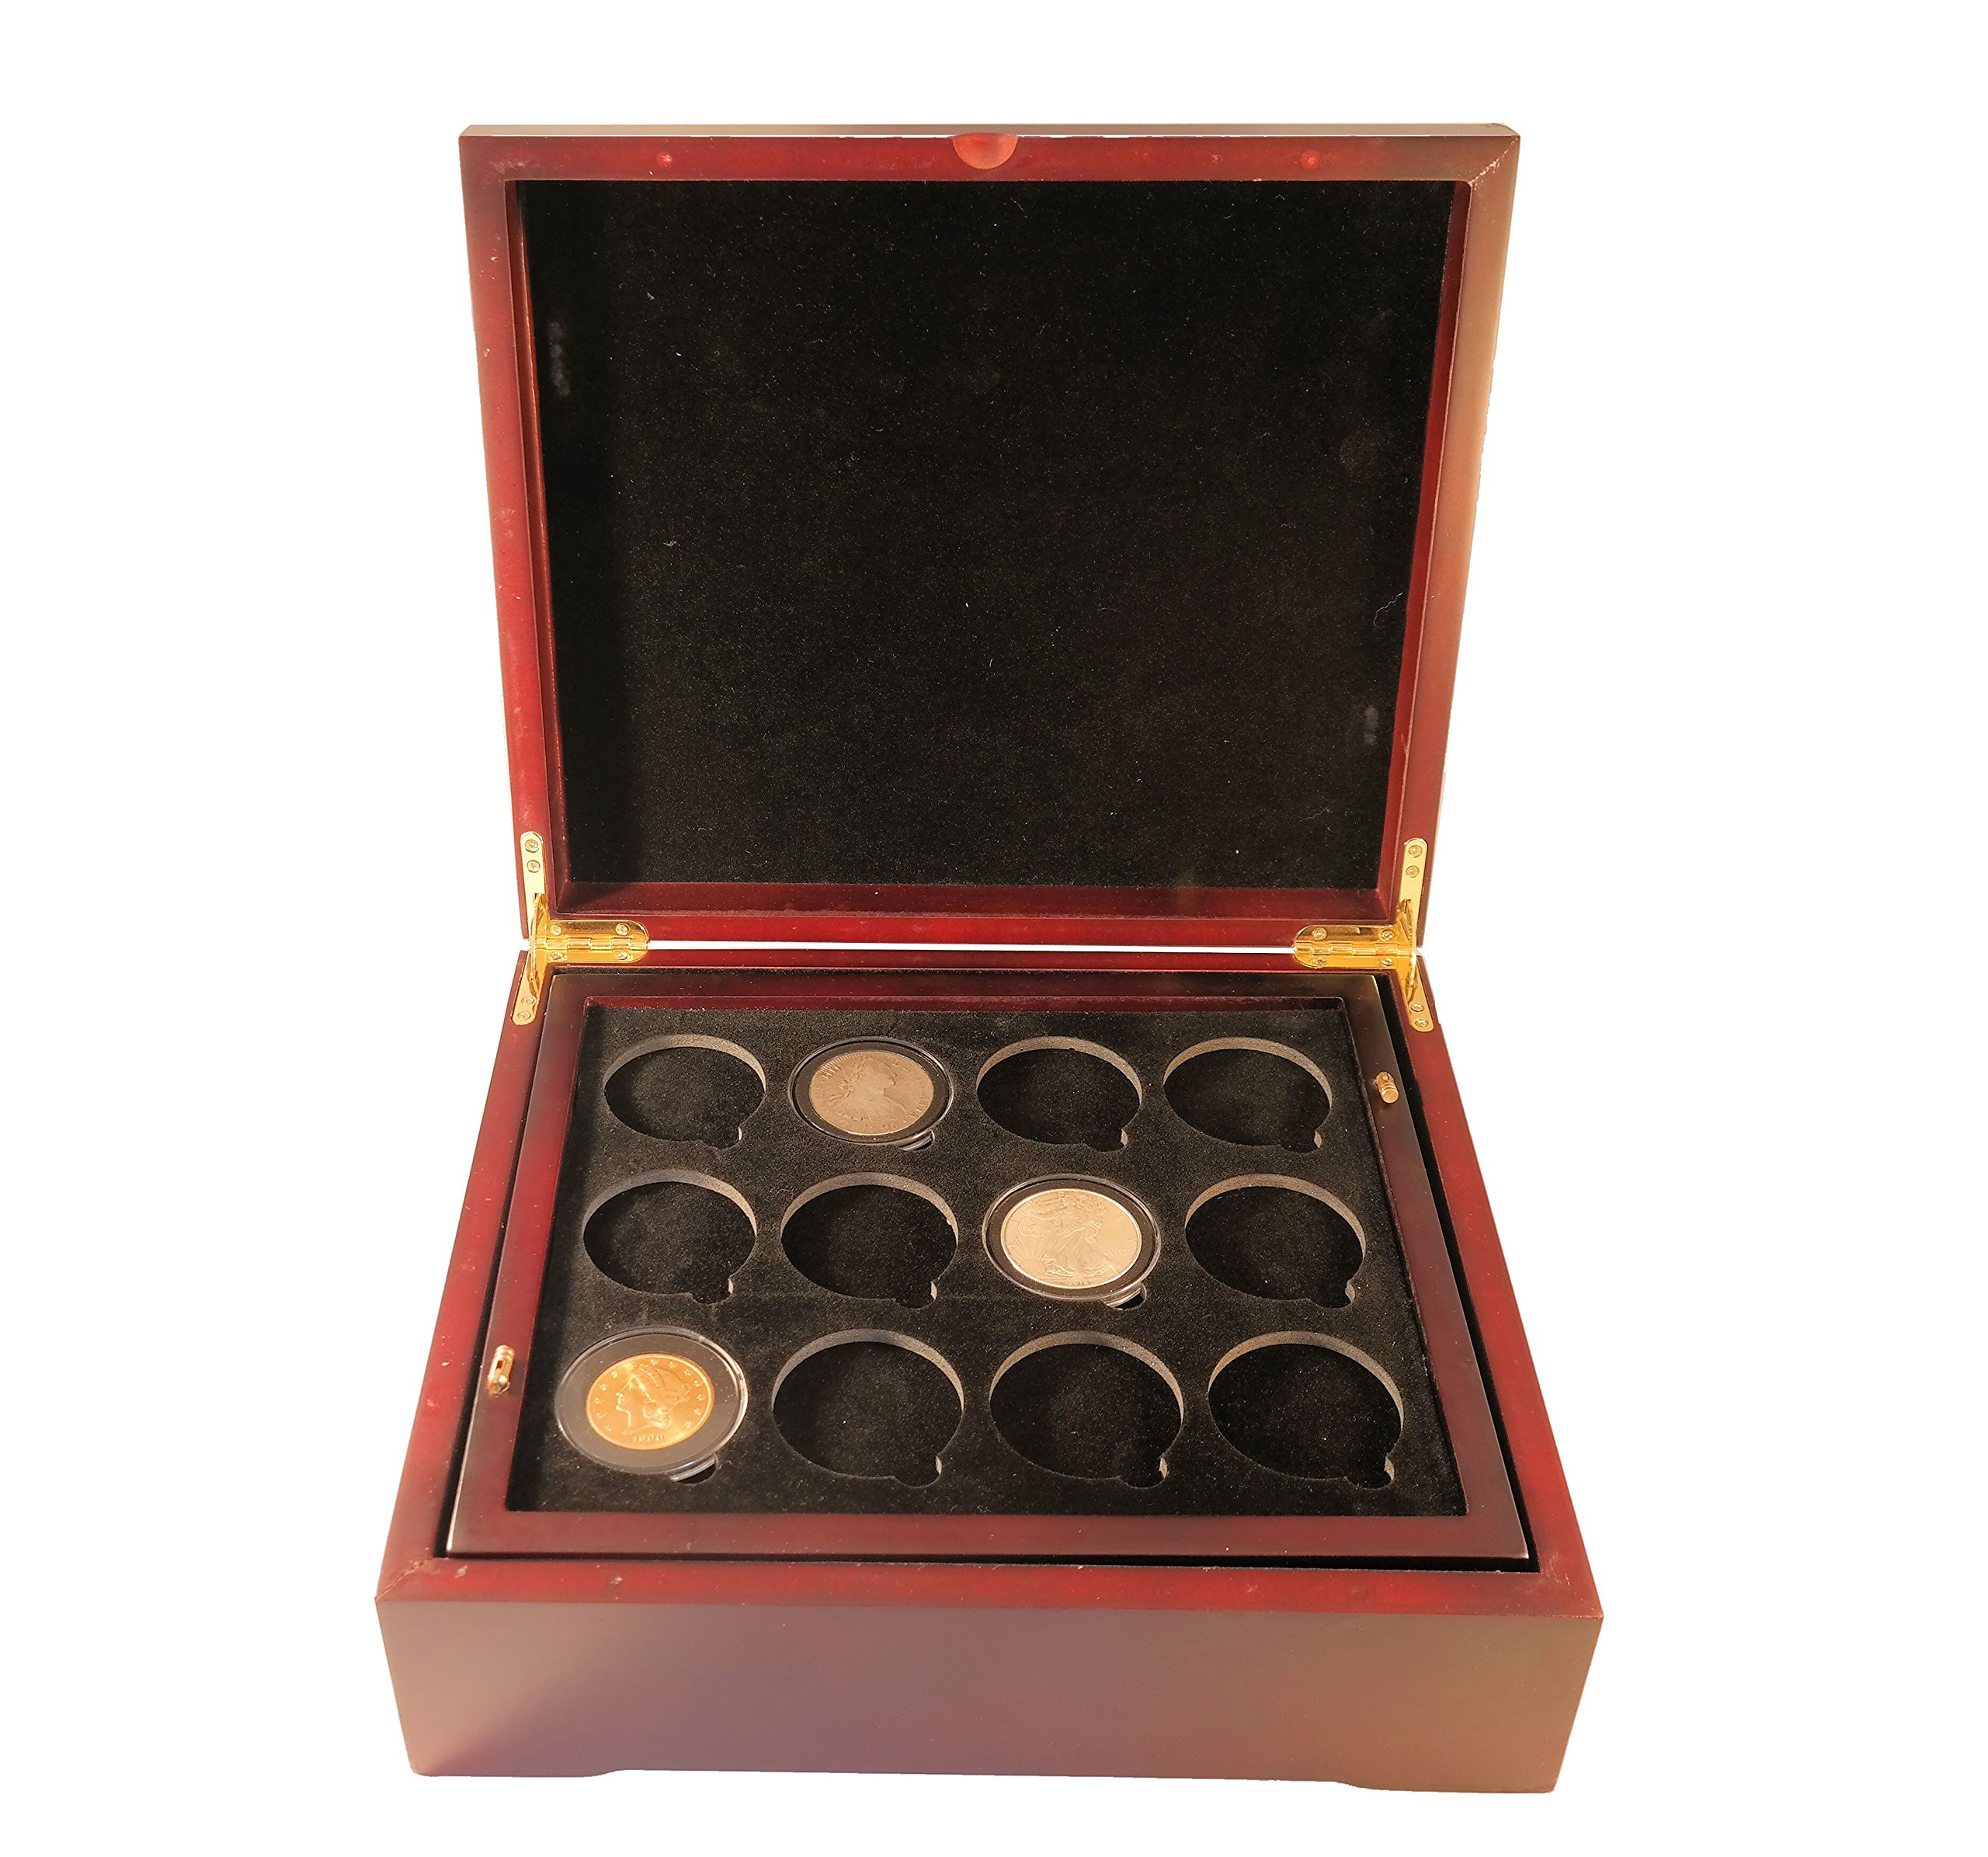 Coin Tray for 12 Extra Large or Air-Tite ''I'' Capsules / 2'' Challenge Coins fits in Mahogany Finish Wood Display Case by Guardhouse (Image #7)